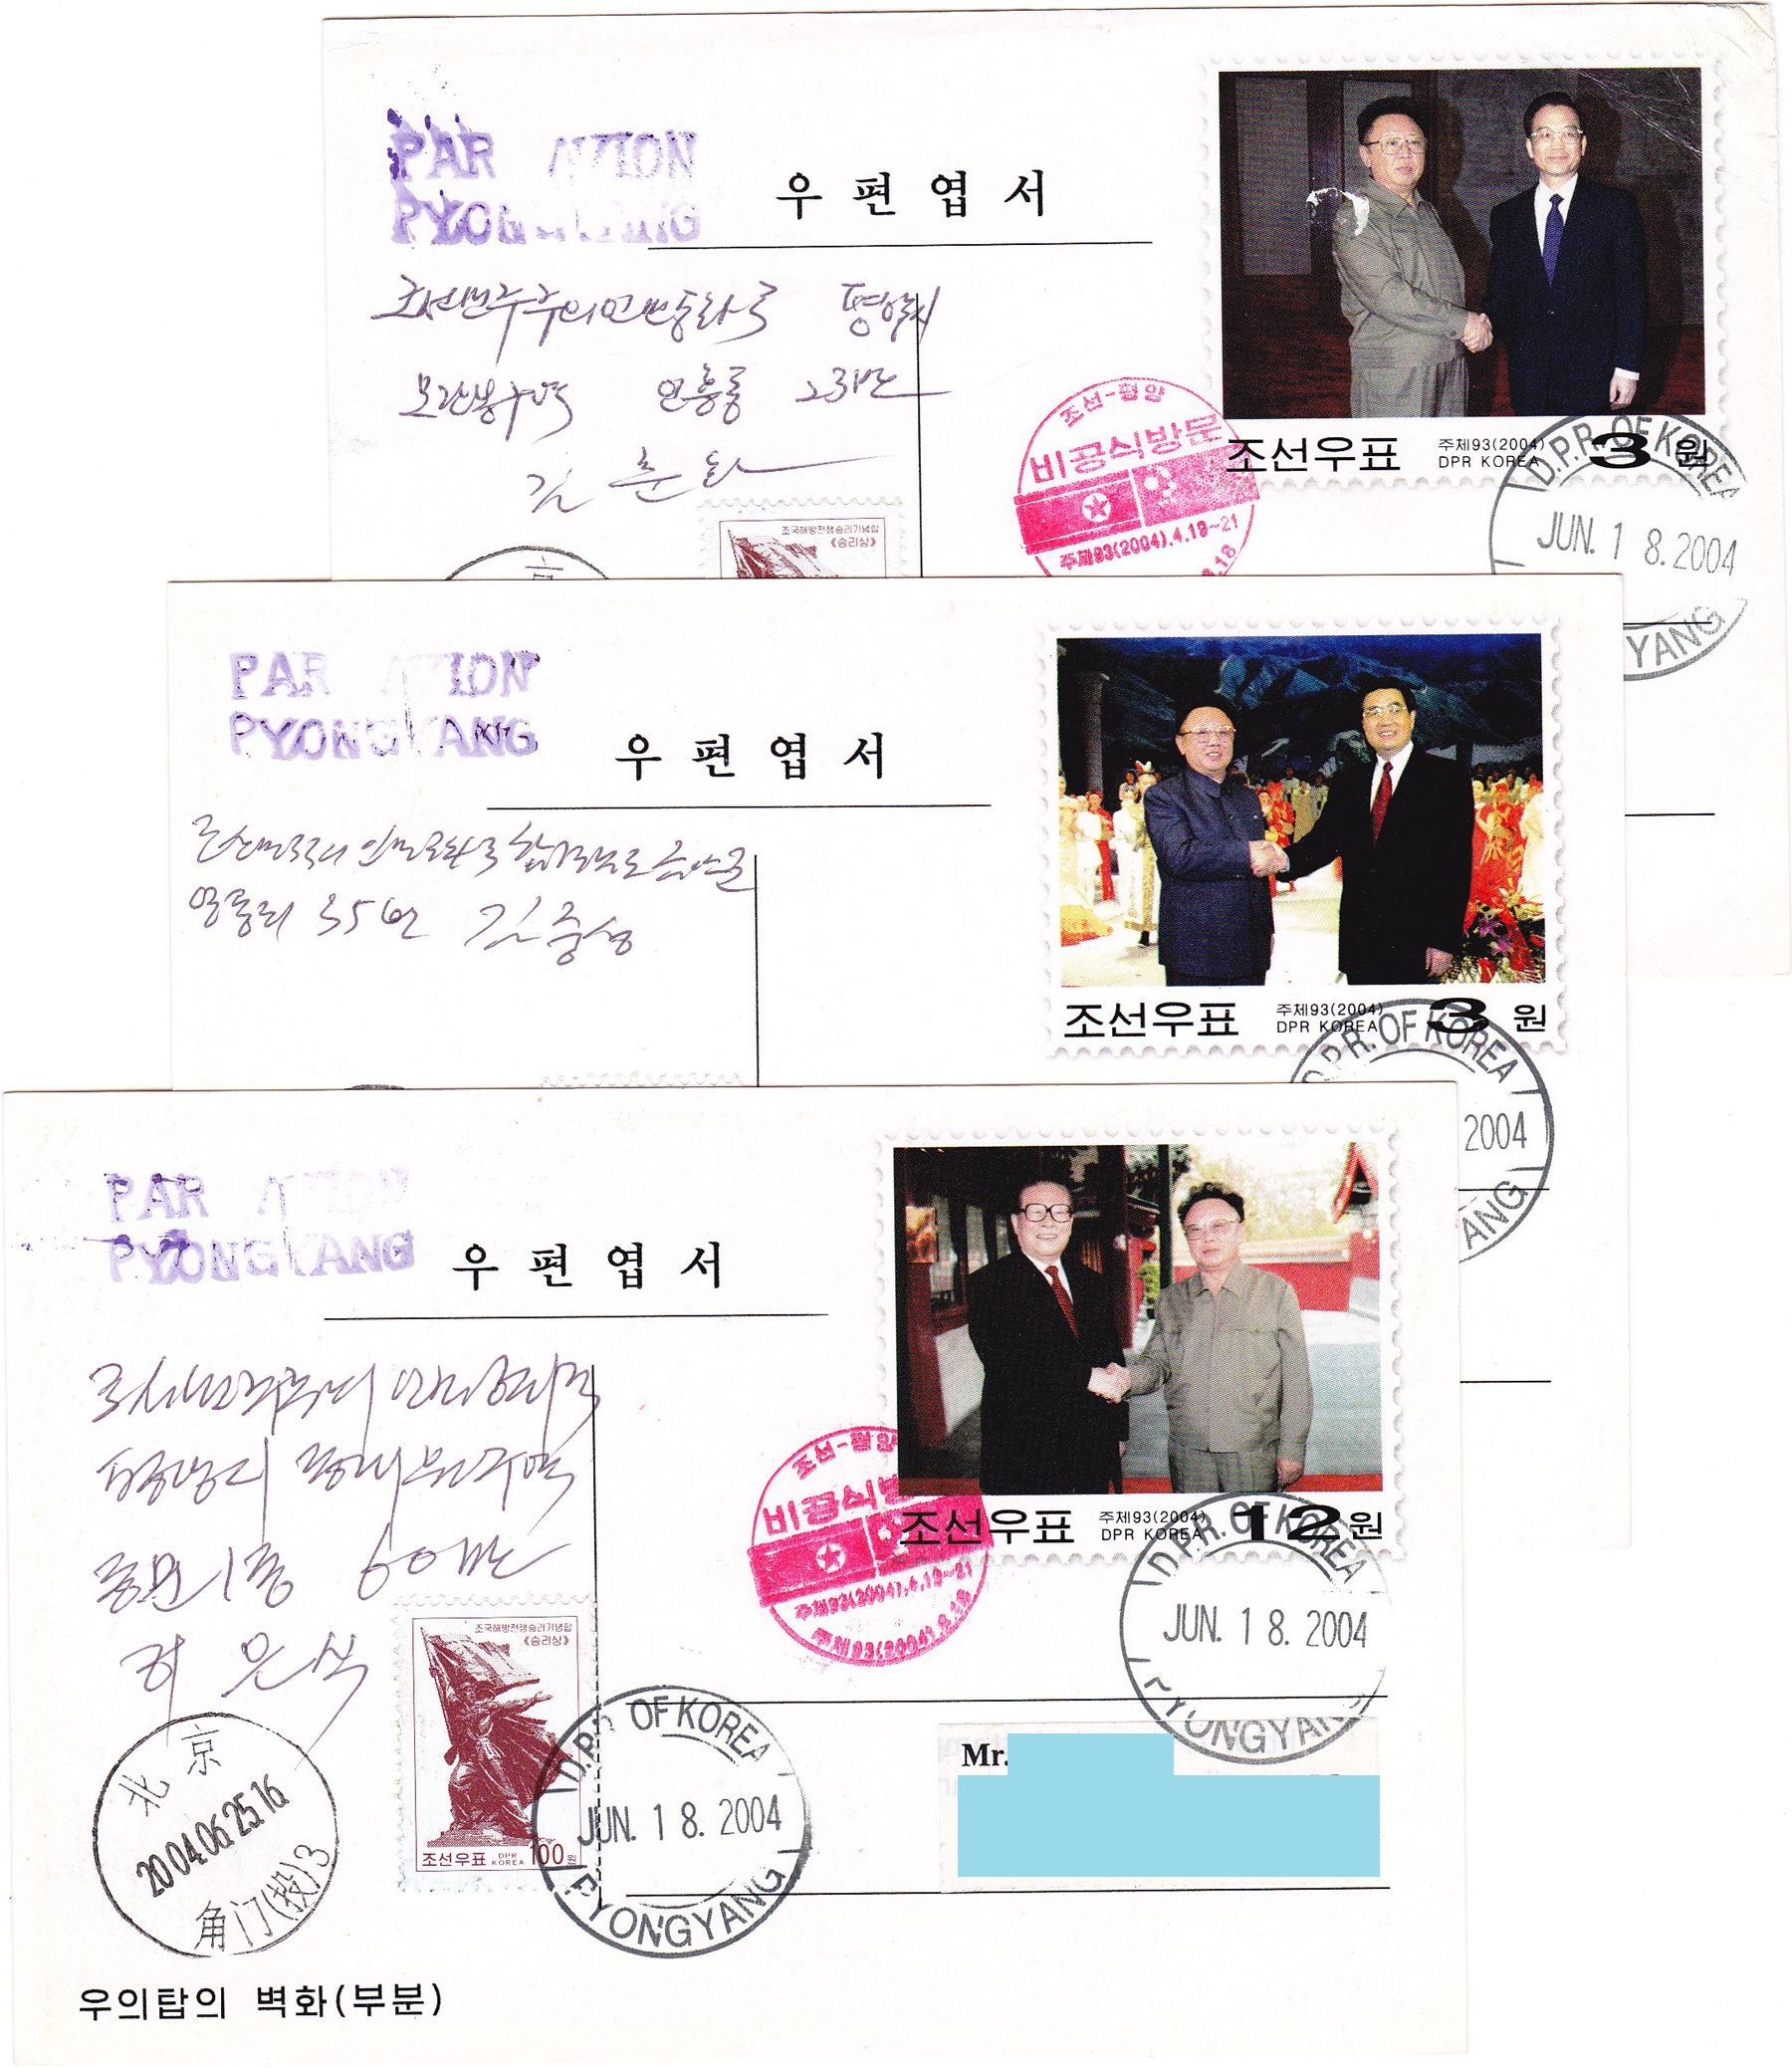 L9311, Korea Visit of Great Leader to China, 3 Pcs Postal Cards Used, 2004